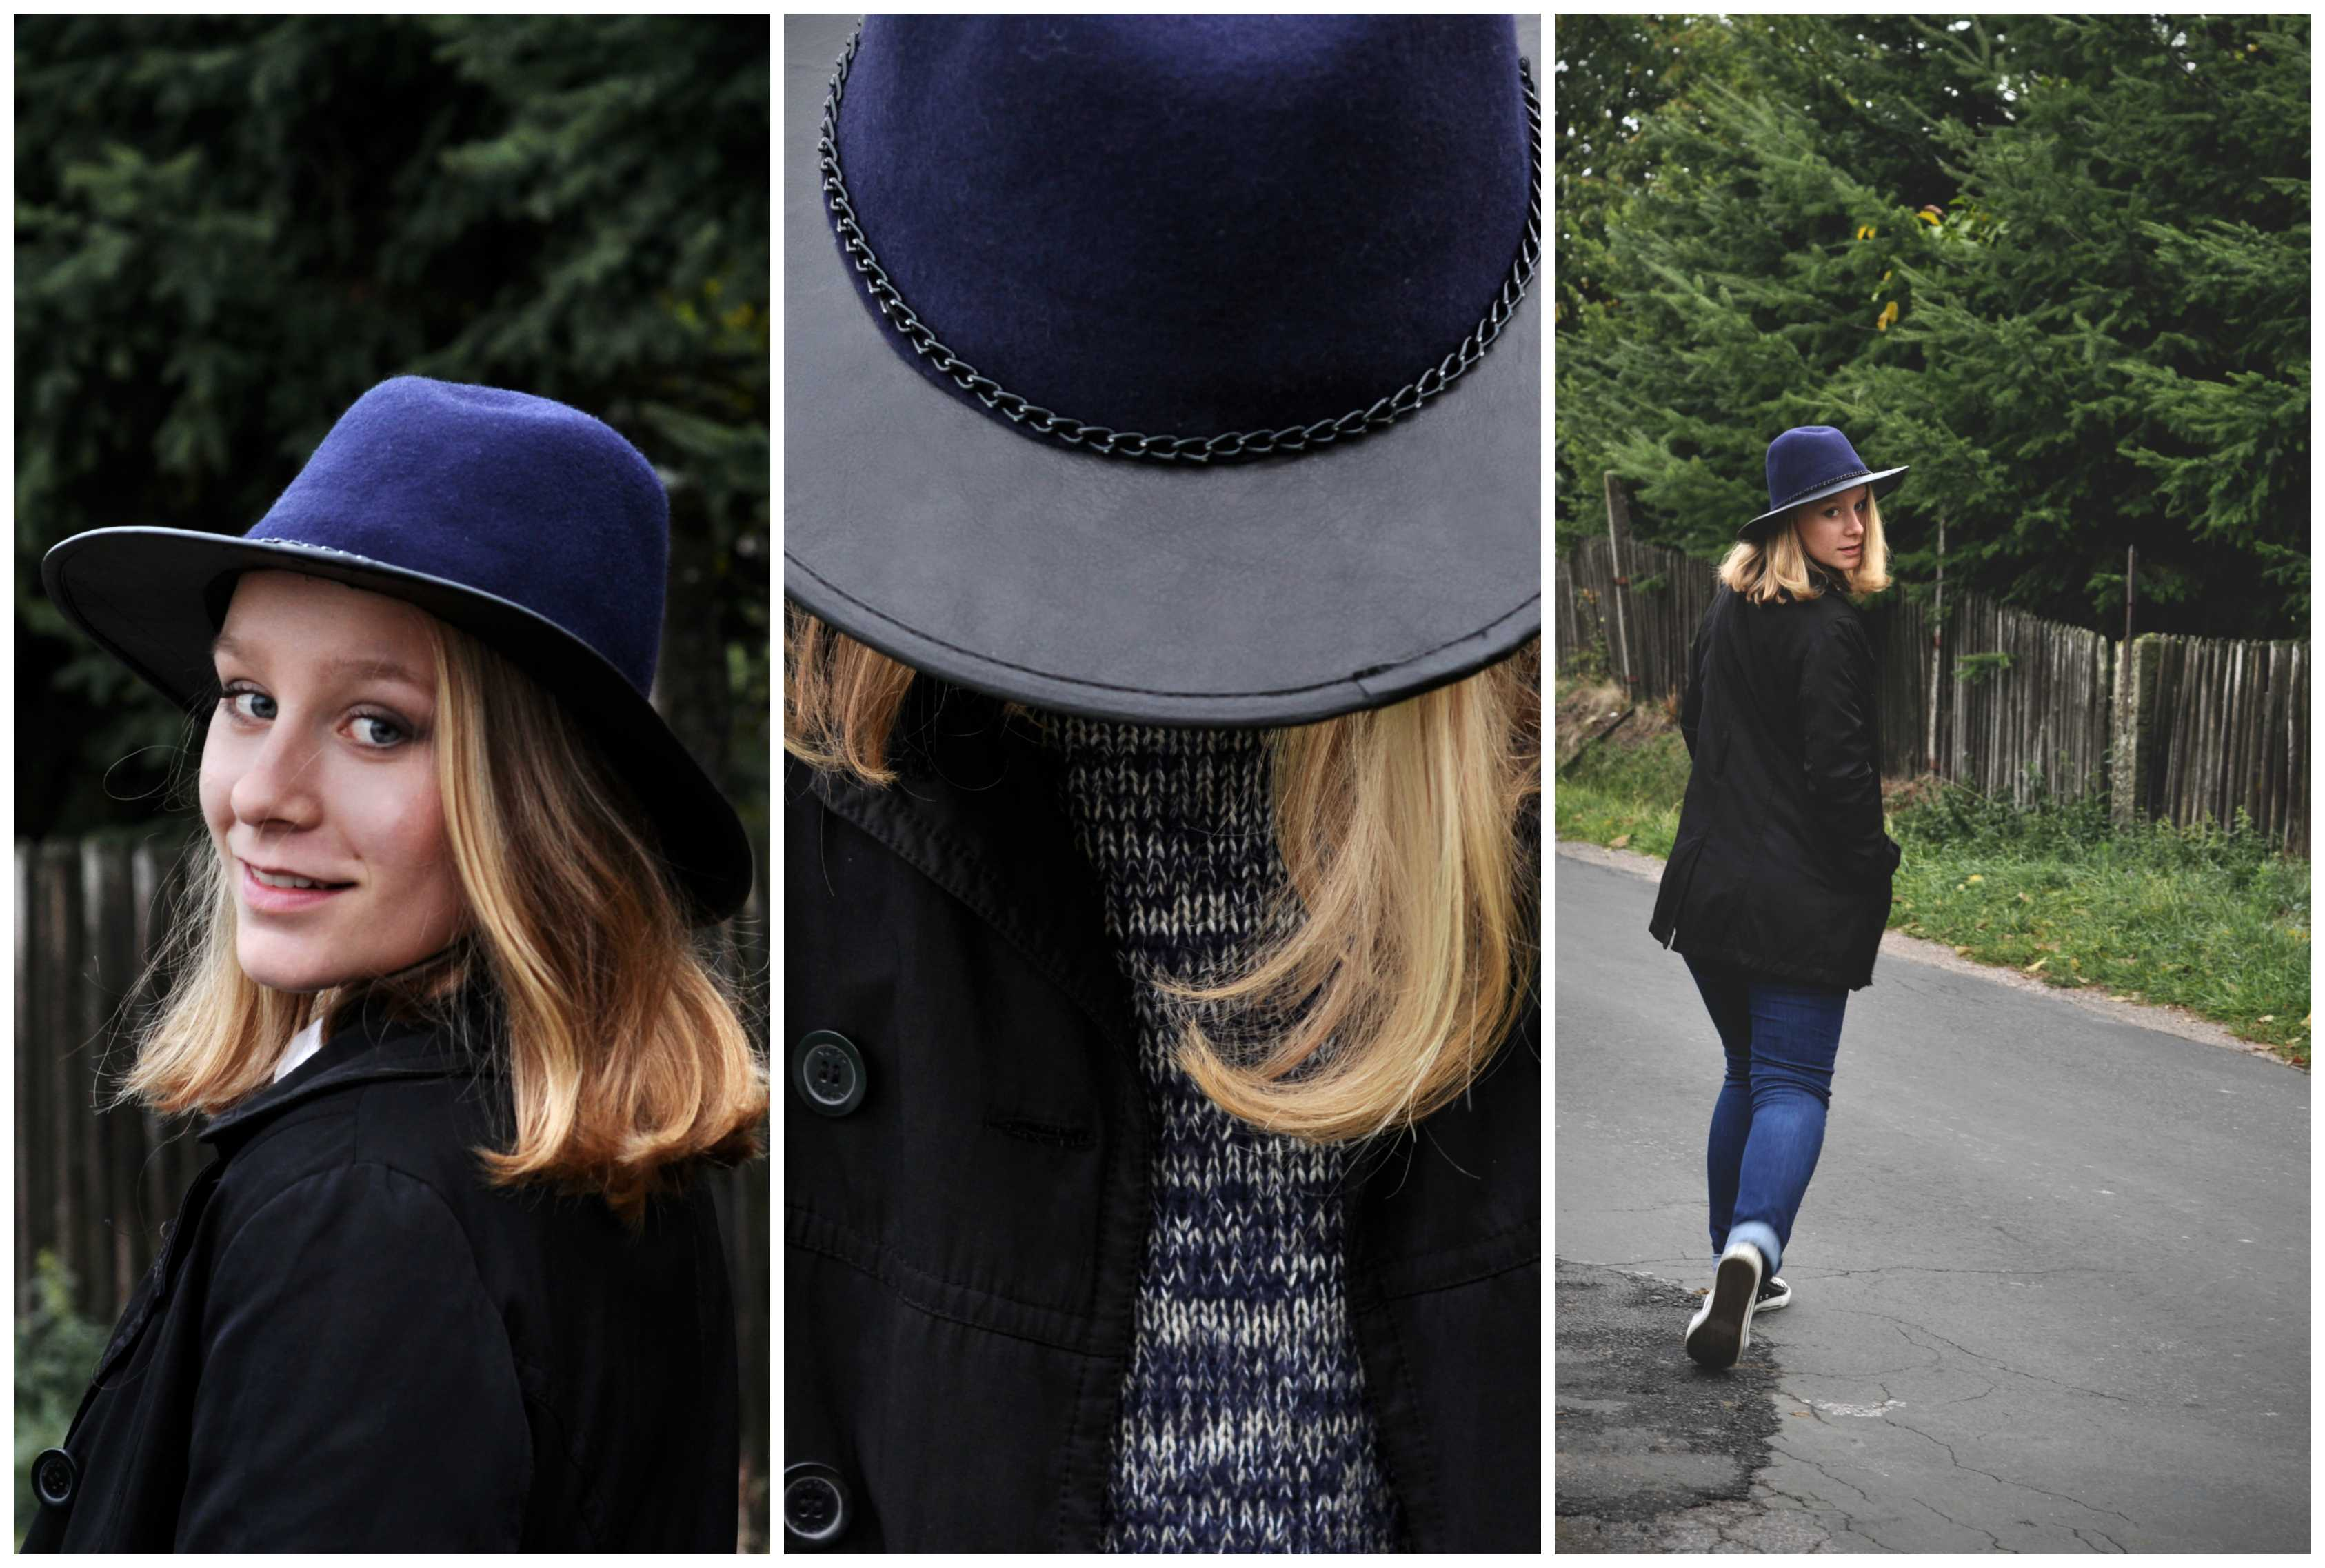 Fashion photoshooting - girl wit the hat